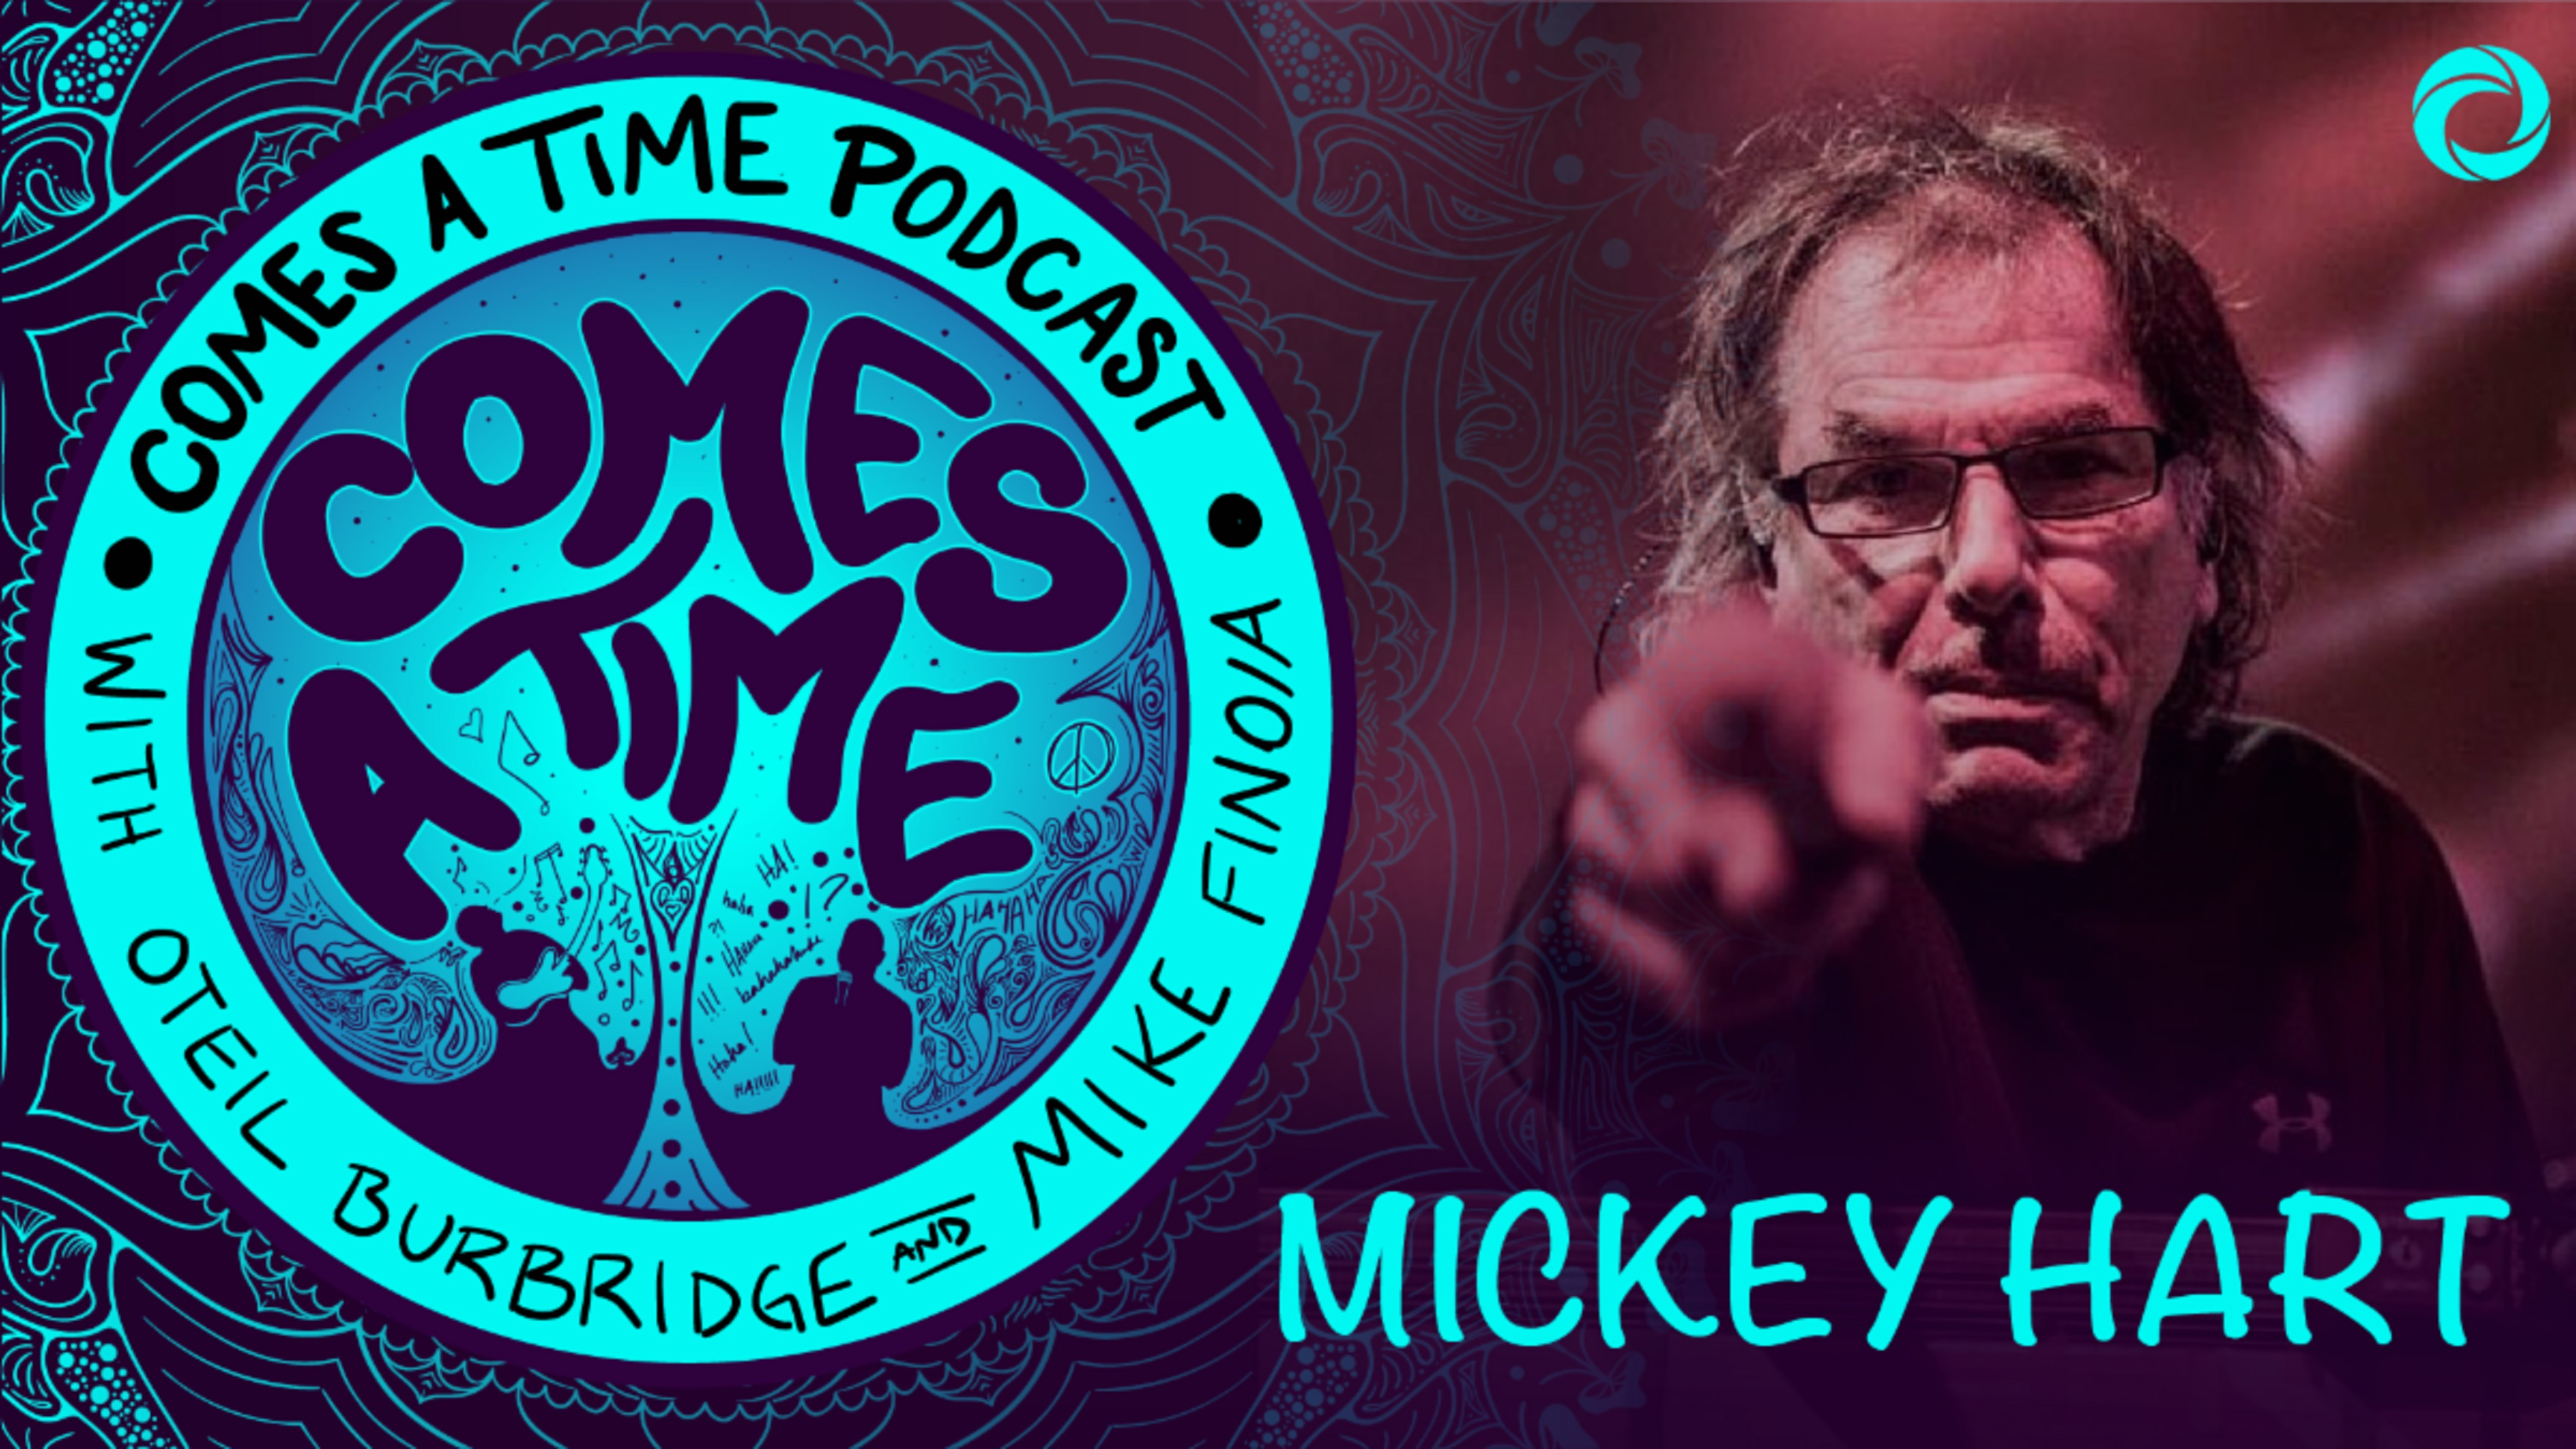 Mickey Hart joins Oteil Burbridge & Mike Finoia on new podcast series